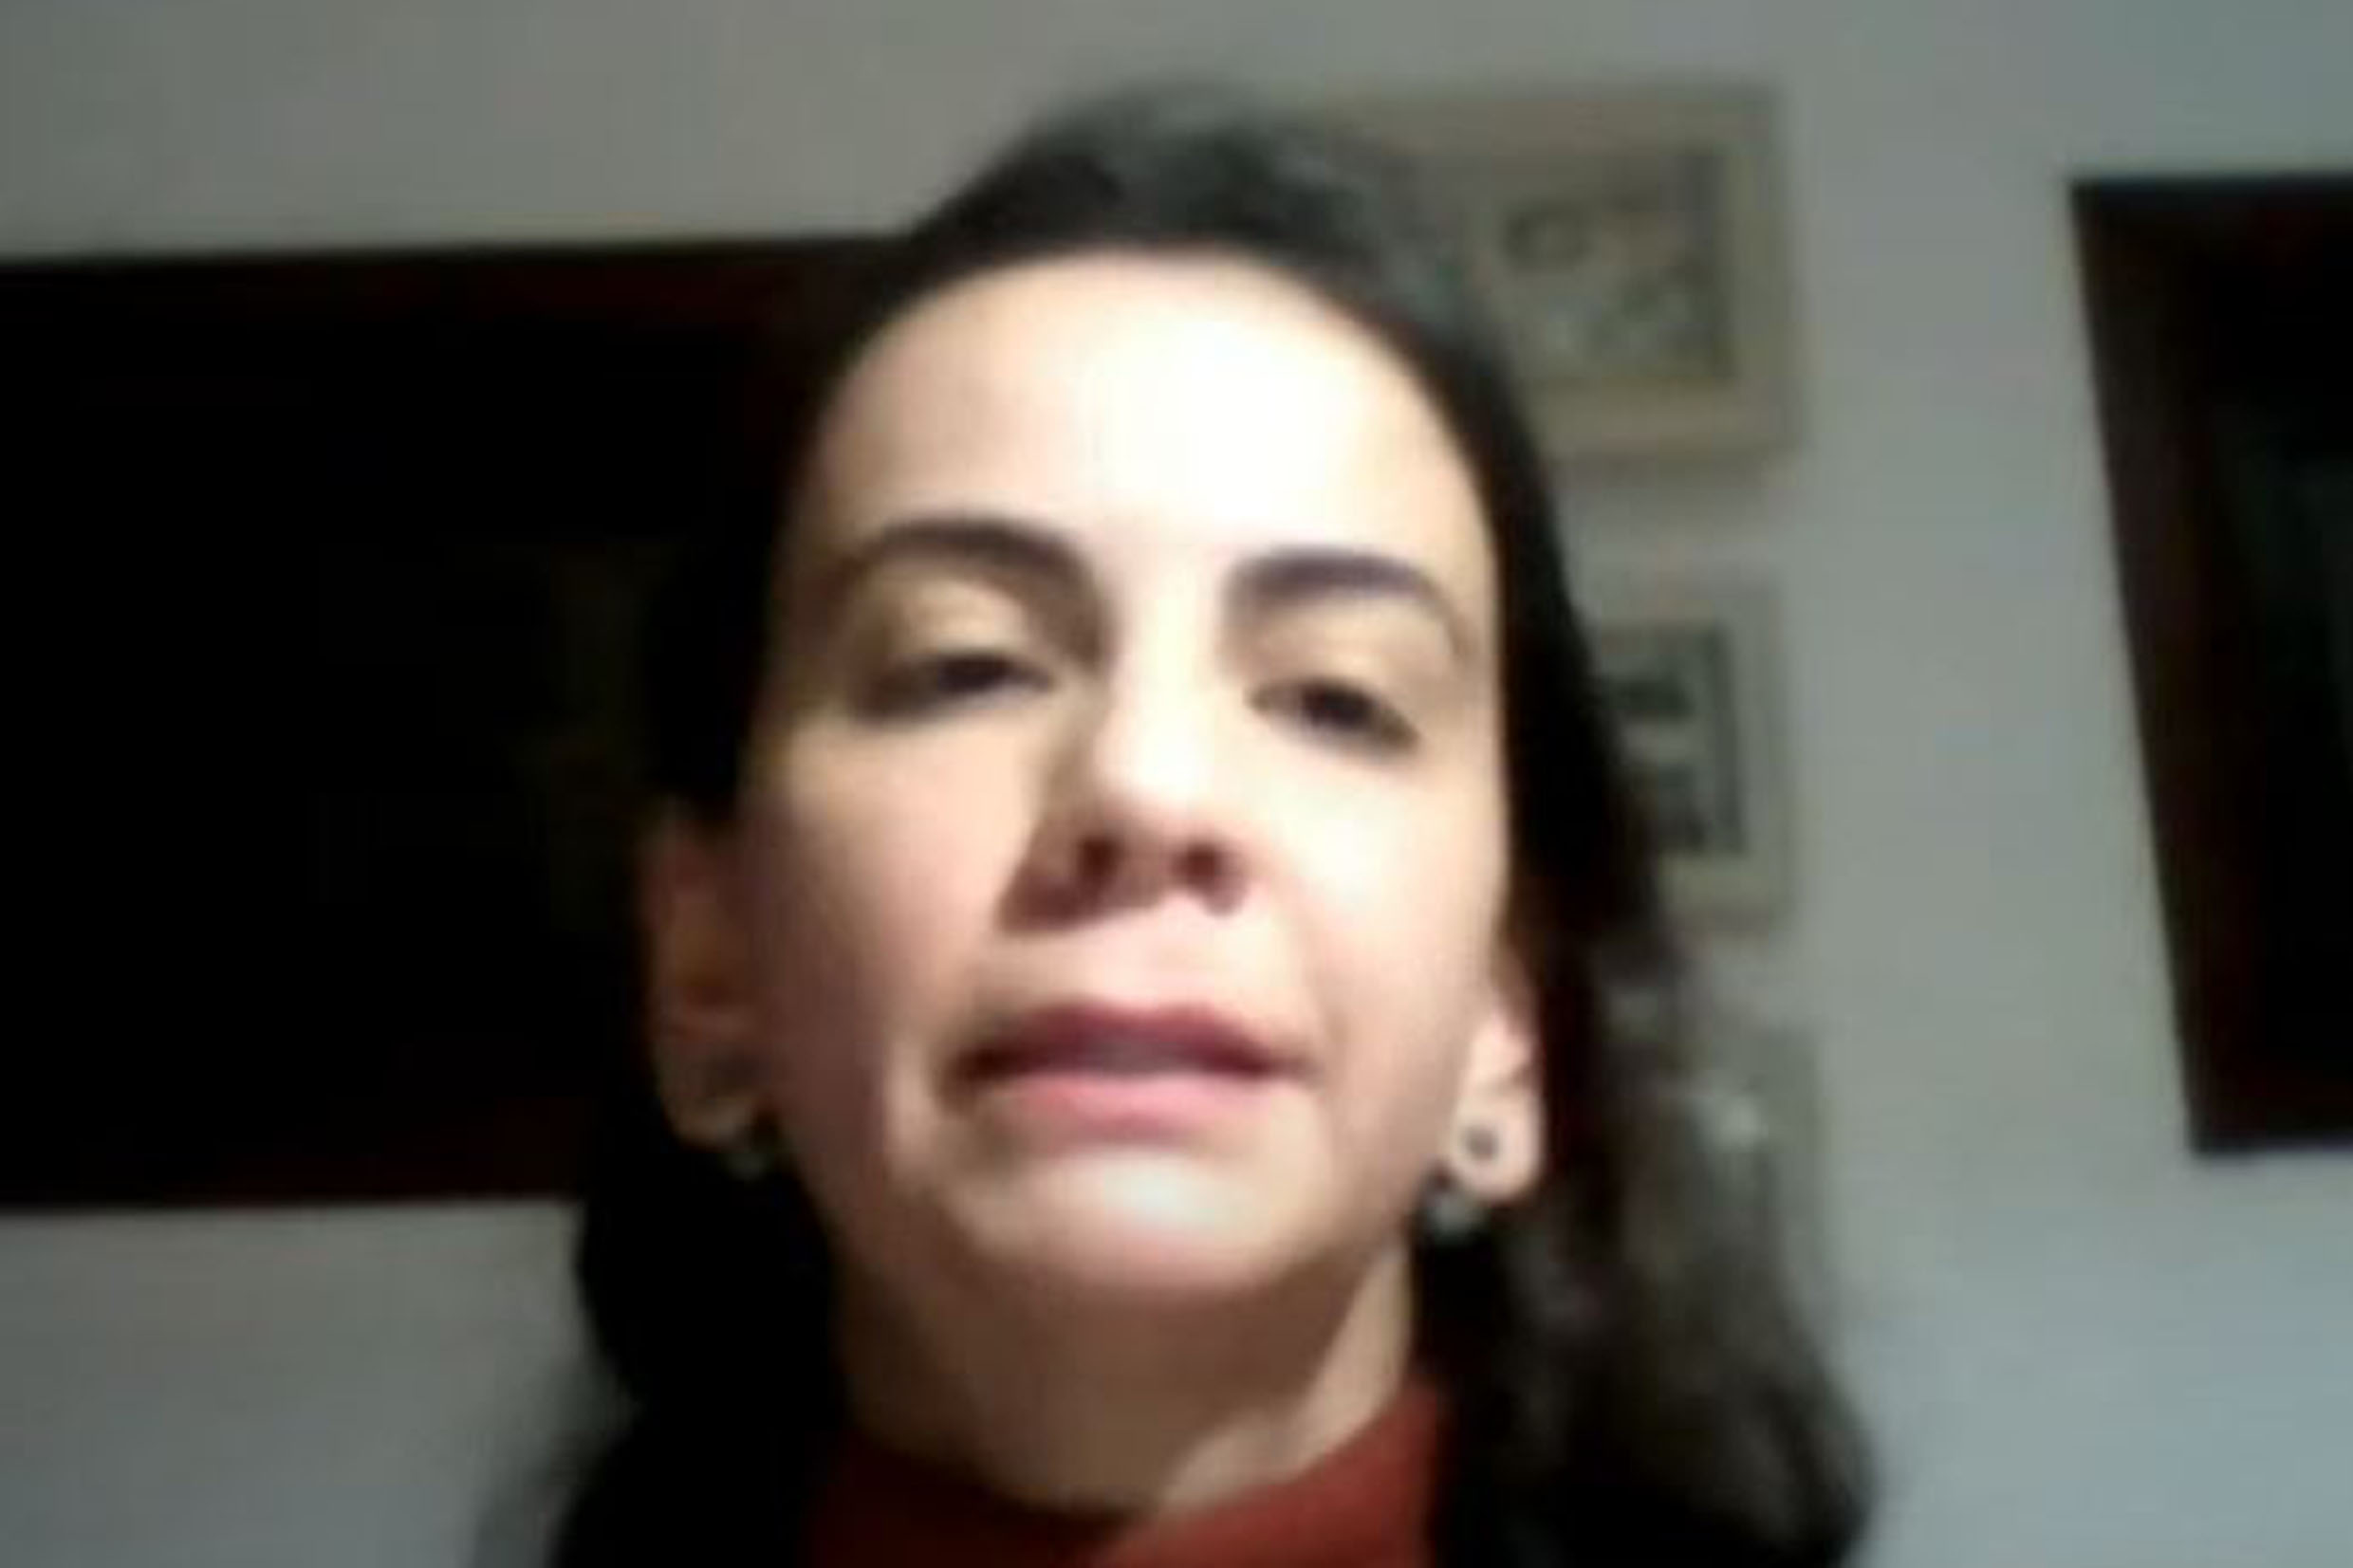 Dra. Barbara Antunes<a style='float:right' href='https://www3.al.sp.gov.br/repositorio/noticia/N-08-2021/fg273185.jpg' target=_blank><img src='/_img/material-file-download-white.png' width='14px' alt='Clique para baixar a imagem'></a>